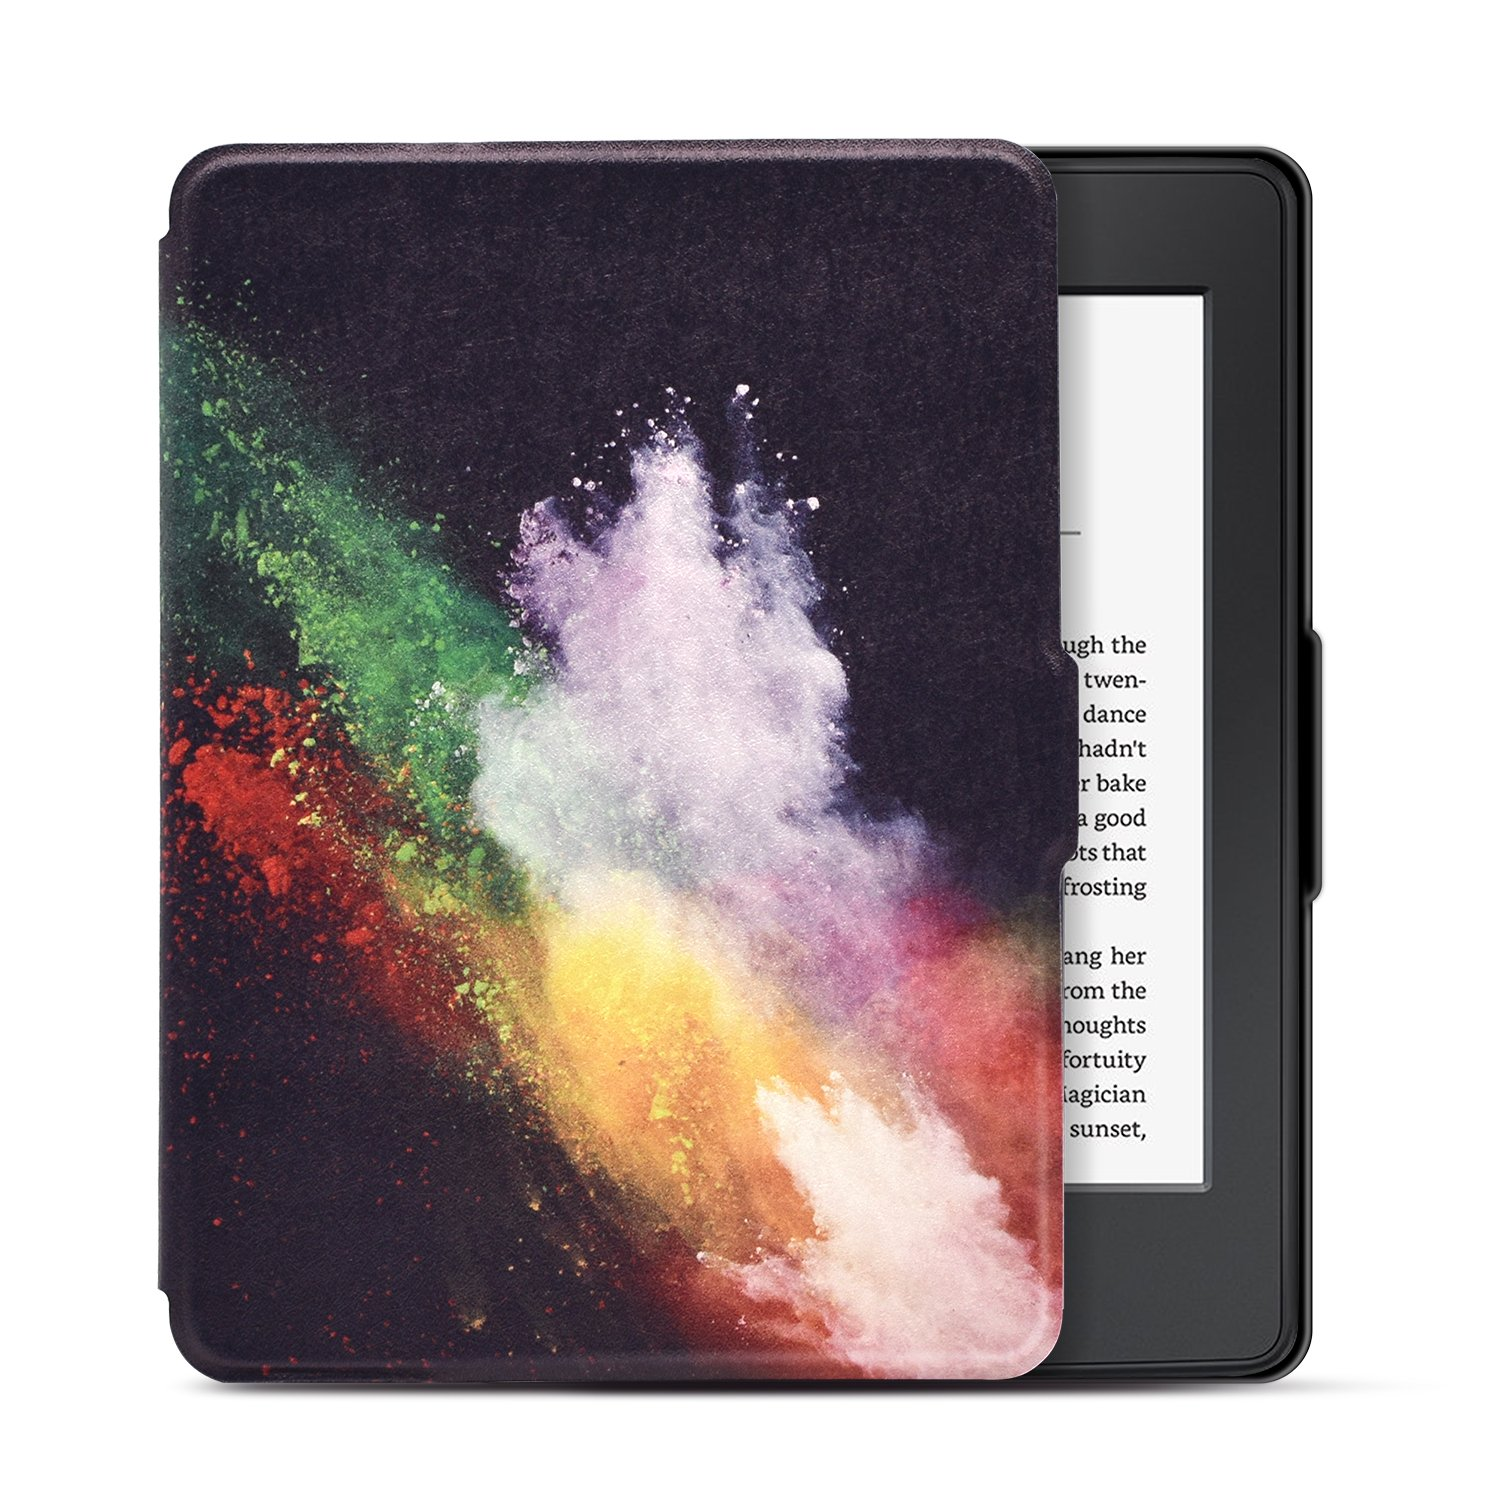 Dopup Case for Kindle Paperwhite, Slim and Light Smart Shell Cover for All-New Amazon Kindle Paperwhite, Folio Flip Style with Auto Sleep/Wake (Color Fun)